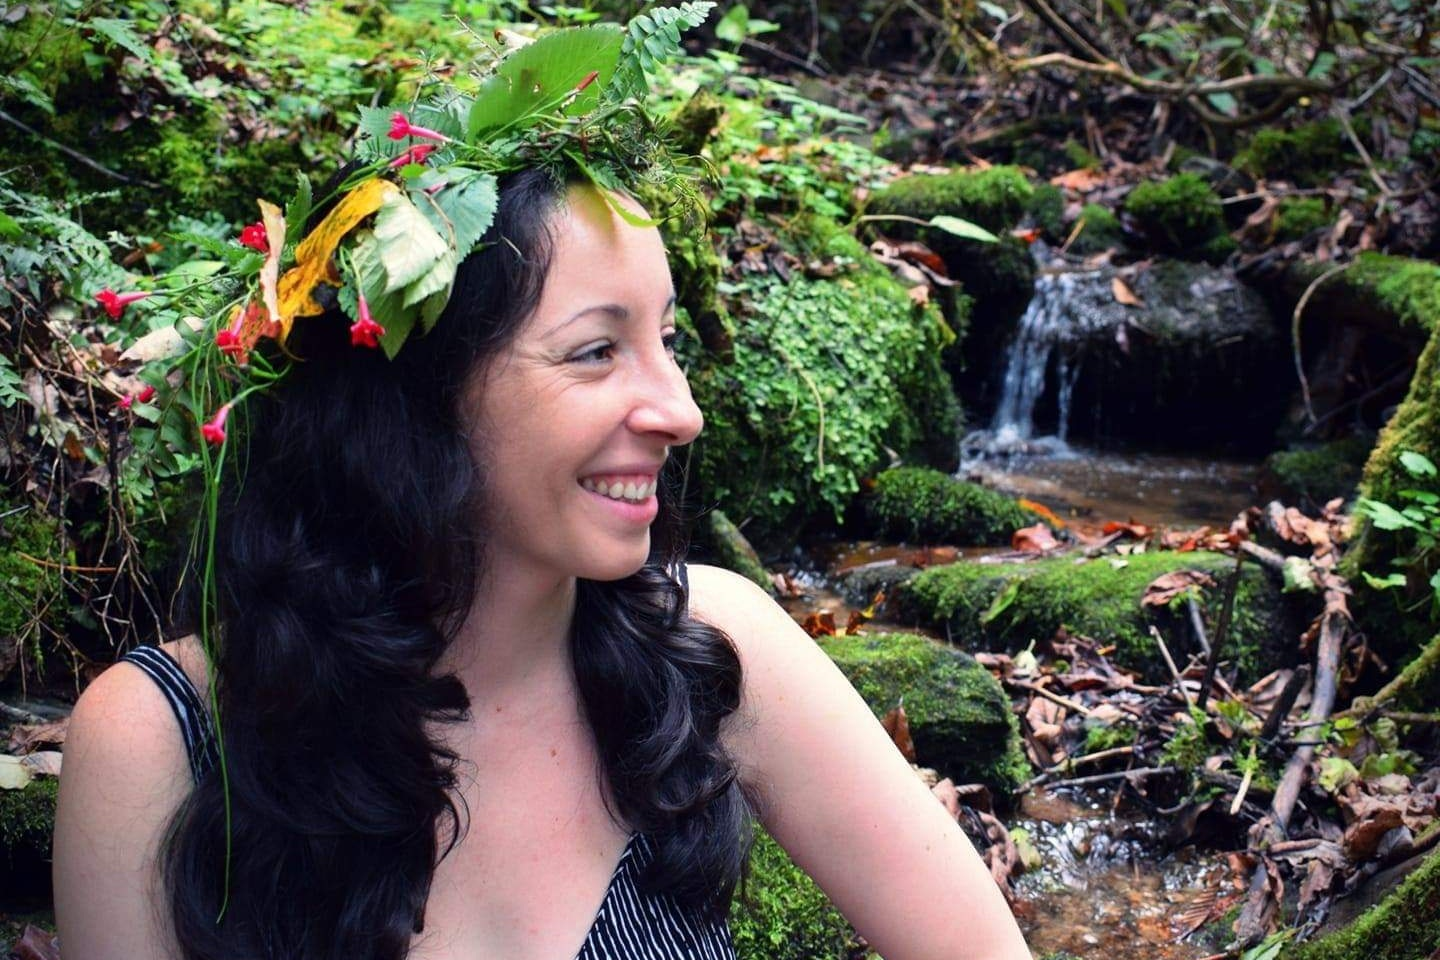 jessica ricchetti - Jessica Ricchetti is a Priestess & Energy Alchemist. She lives her life in Devotion, Love, Wild Woman Wisdom, and Sisterhood. Her soul-work is rooted in supporting women on a journey of Embodying Wholeness, rising in Divine Leadership, and sharing their own unique magic with the world. She practices an Alchemical blend of Energy Medicine, Sacred Ceremony, Soul Journey Breathwork, Women's Circles, Retreats, Shadow Work, Transformational Healings, Readings, and Mentorships. Her life and work are based in the sacred mountains of Asheville NC, and she supports women all over the world with distance sessions.